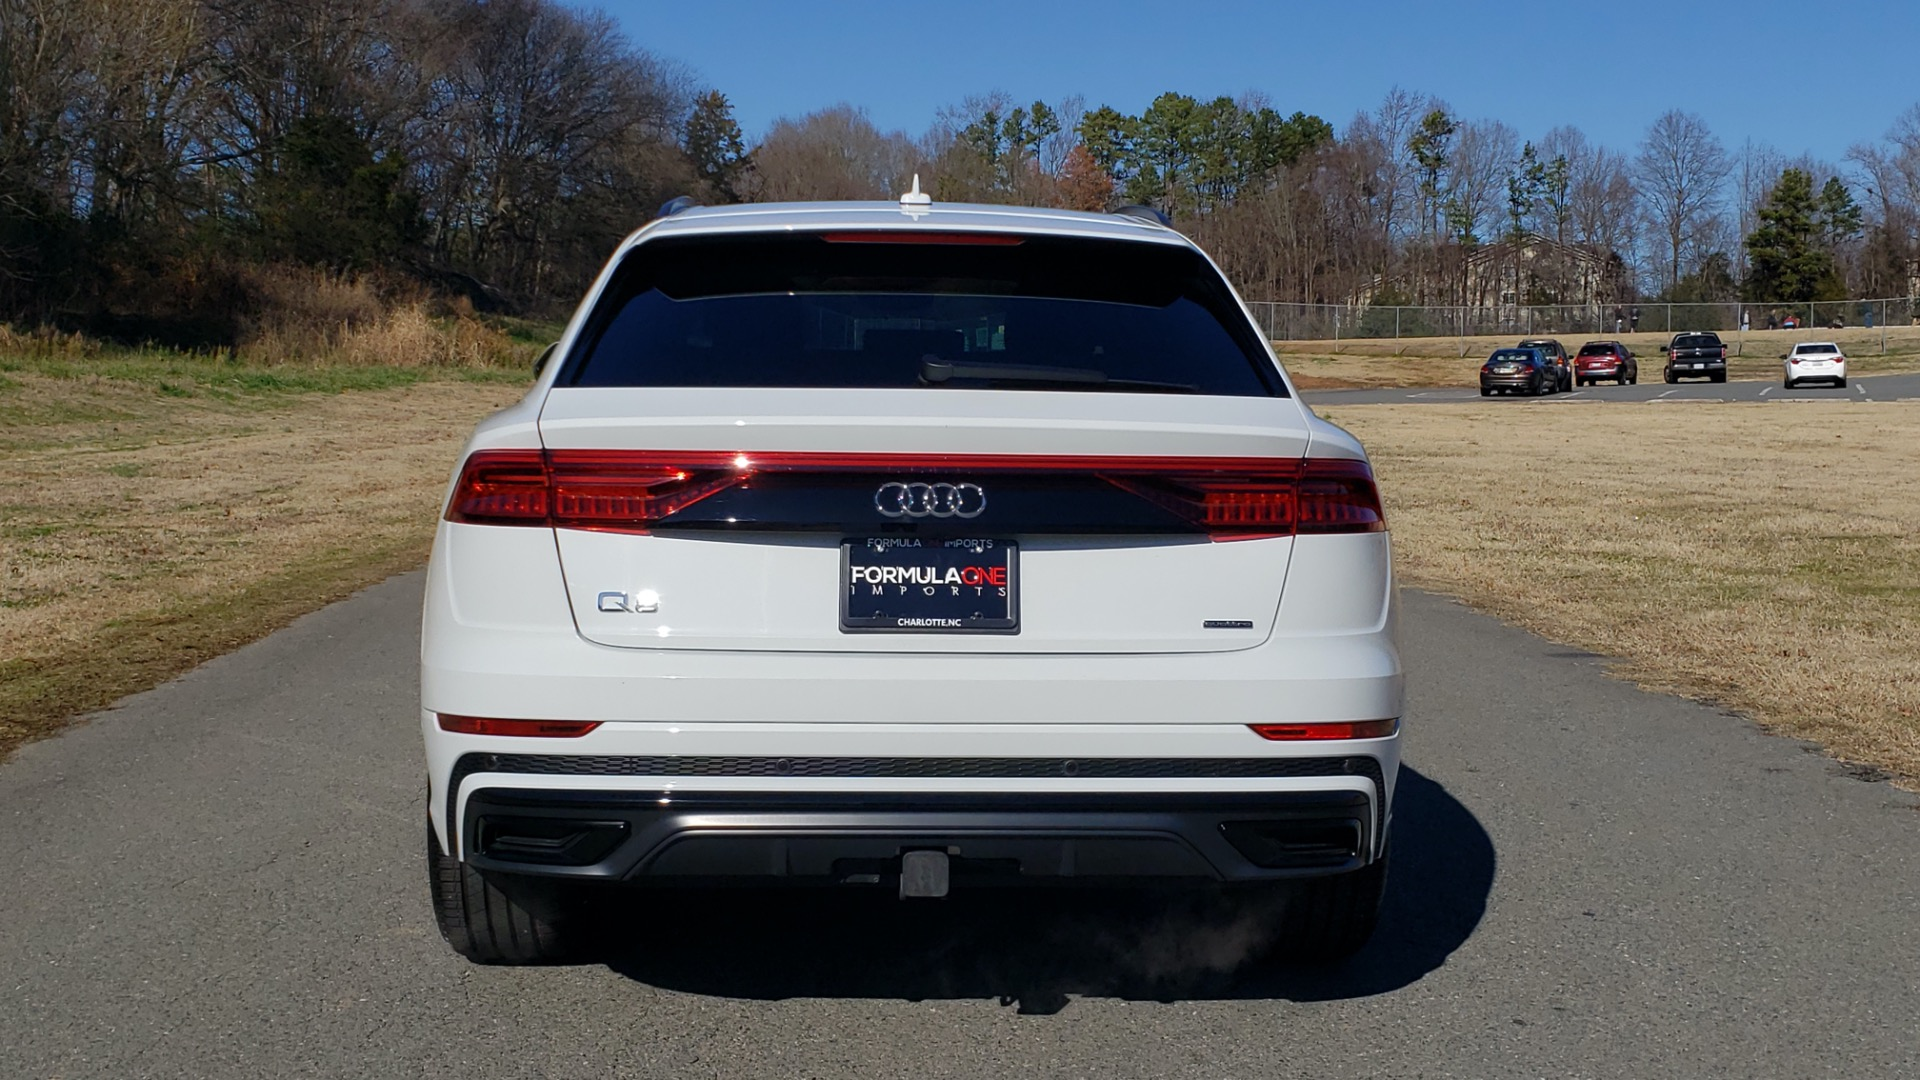 Used 2019 Audi Q8 PRESTIGE S-LINE / LUX PKG / ADAPT CHASSIS / YEAR ONE / CLD WTHR for sale Sold at Formula Imports in Charlotte NC 28227 32